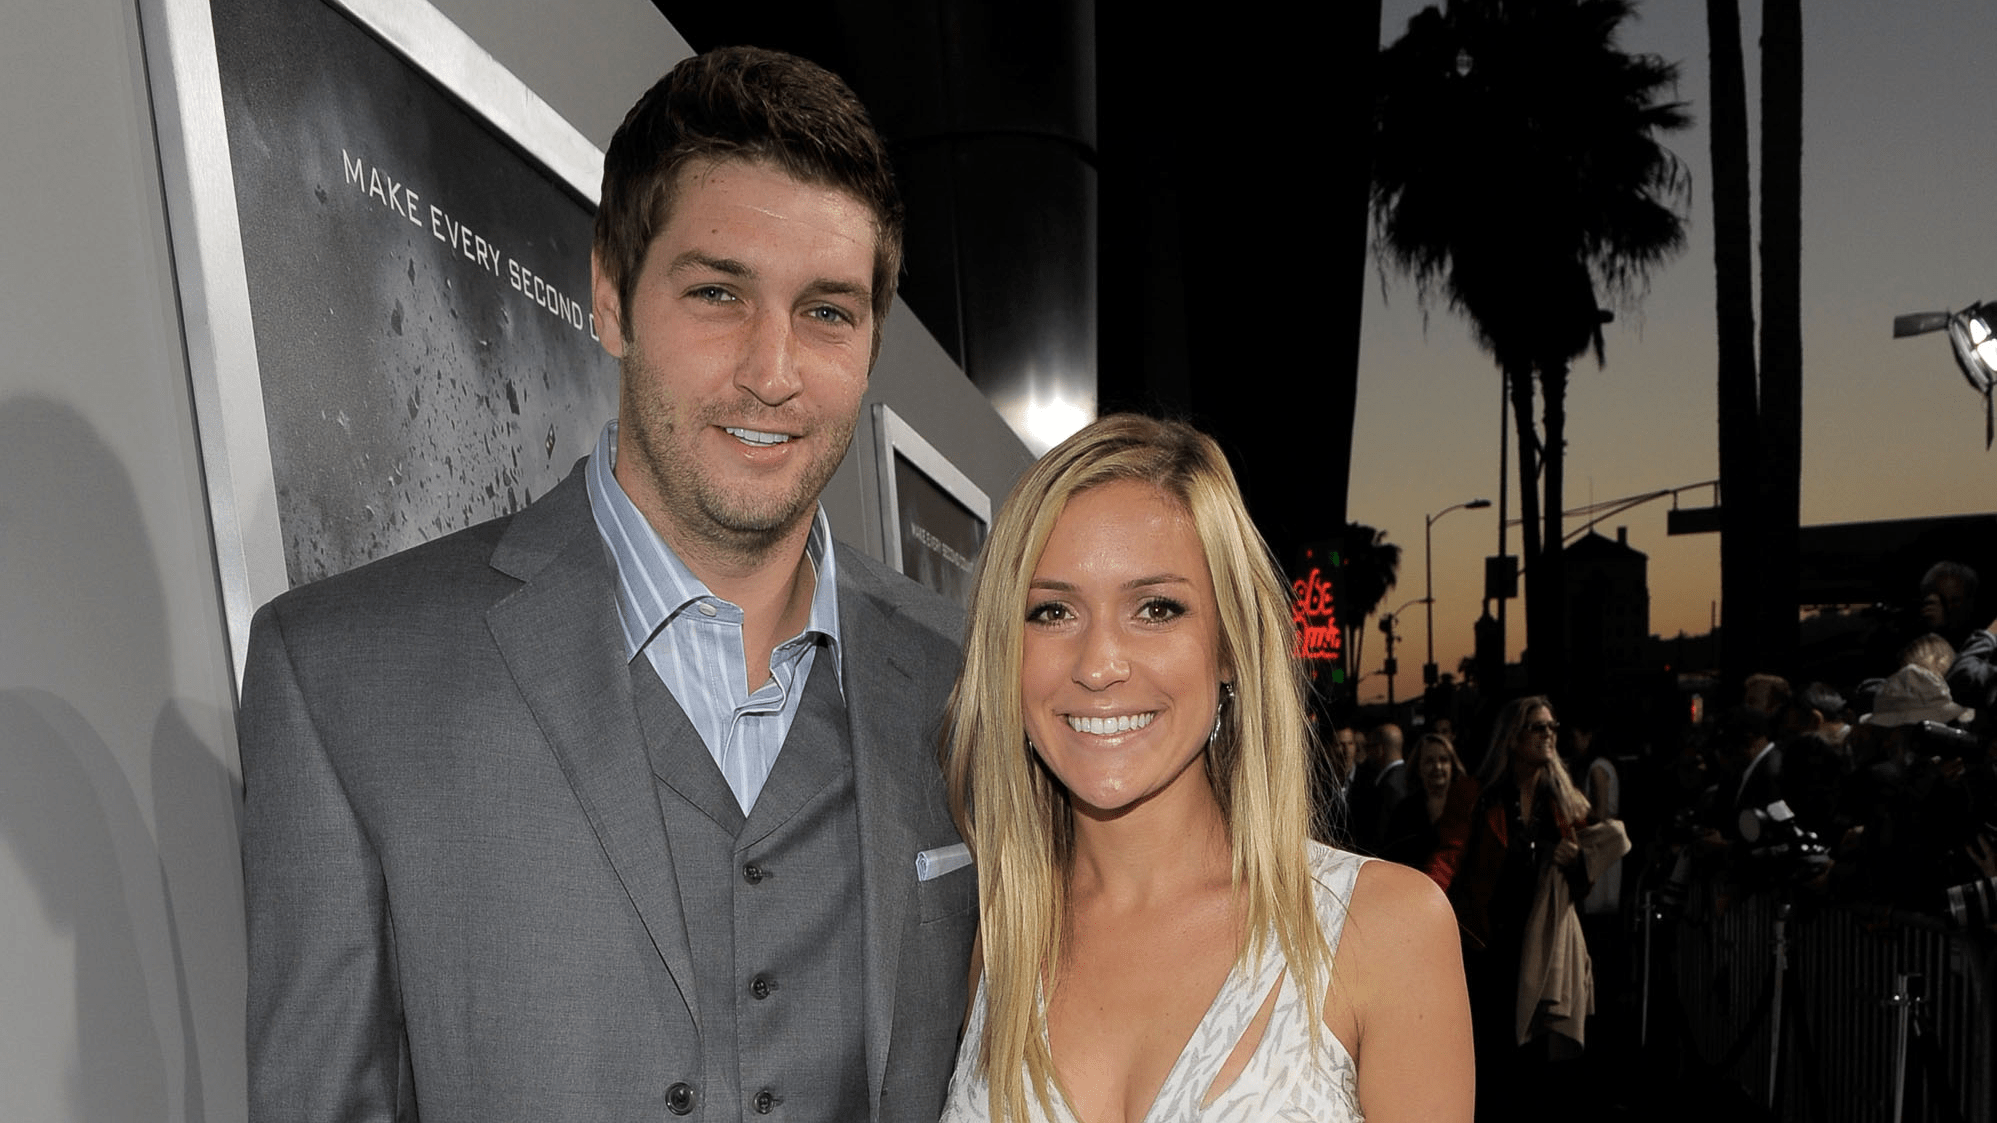 Jay Cutler and Kristin Cavallari: A timeline of their relationship, from 2010 first date to divorce